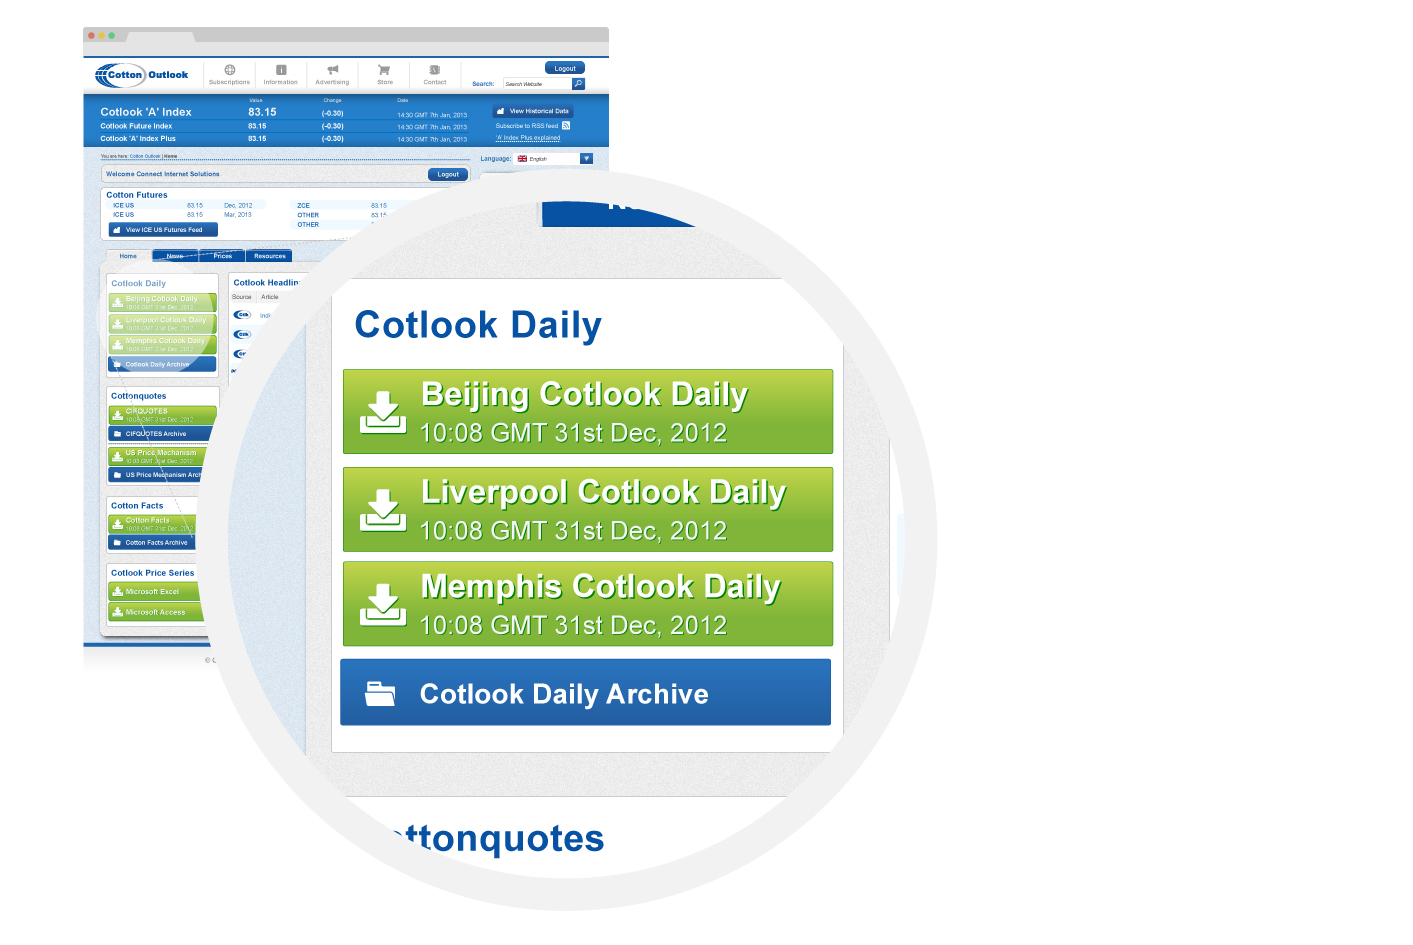 The Cotton Outlook subscriber interface